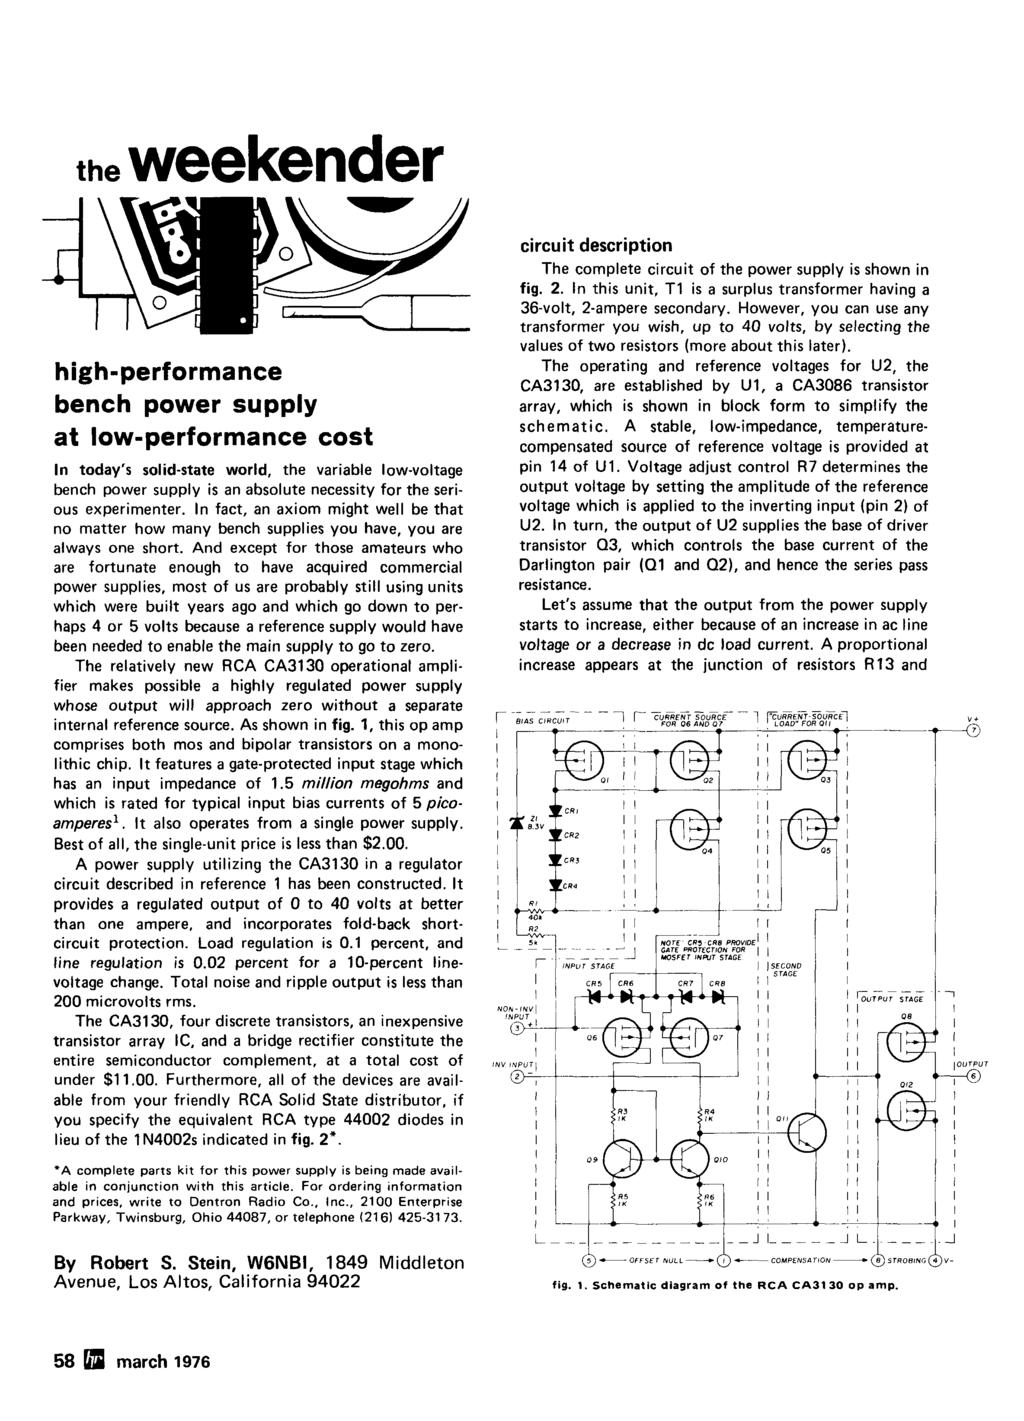 Radio P Crystal Oscillators Improving Vhfluhf Receivers 44 March Op Amp Opamps In A Loop Electrical Engineering Stack Exchange The Weekender Highperformance Bench Power Supply At Lowperformance Cost N Todays Solidstate World Variable